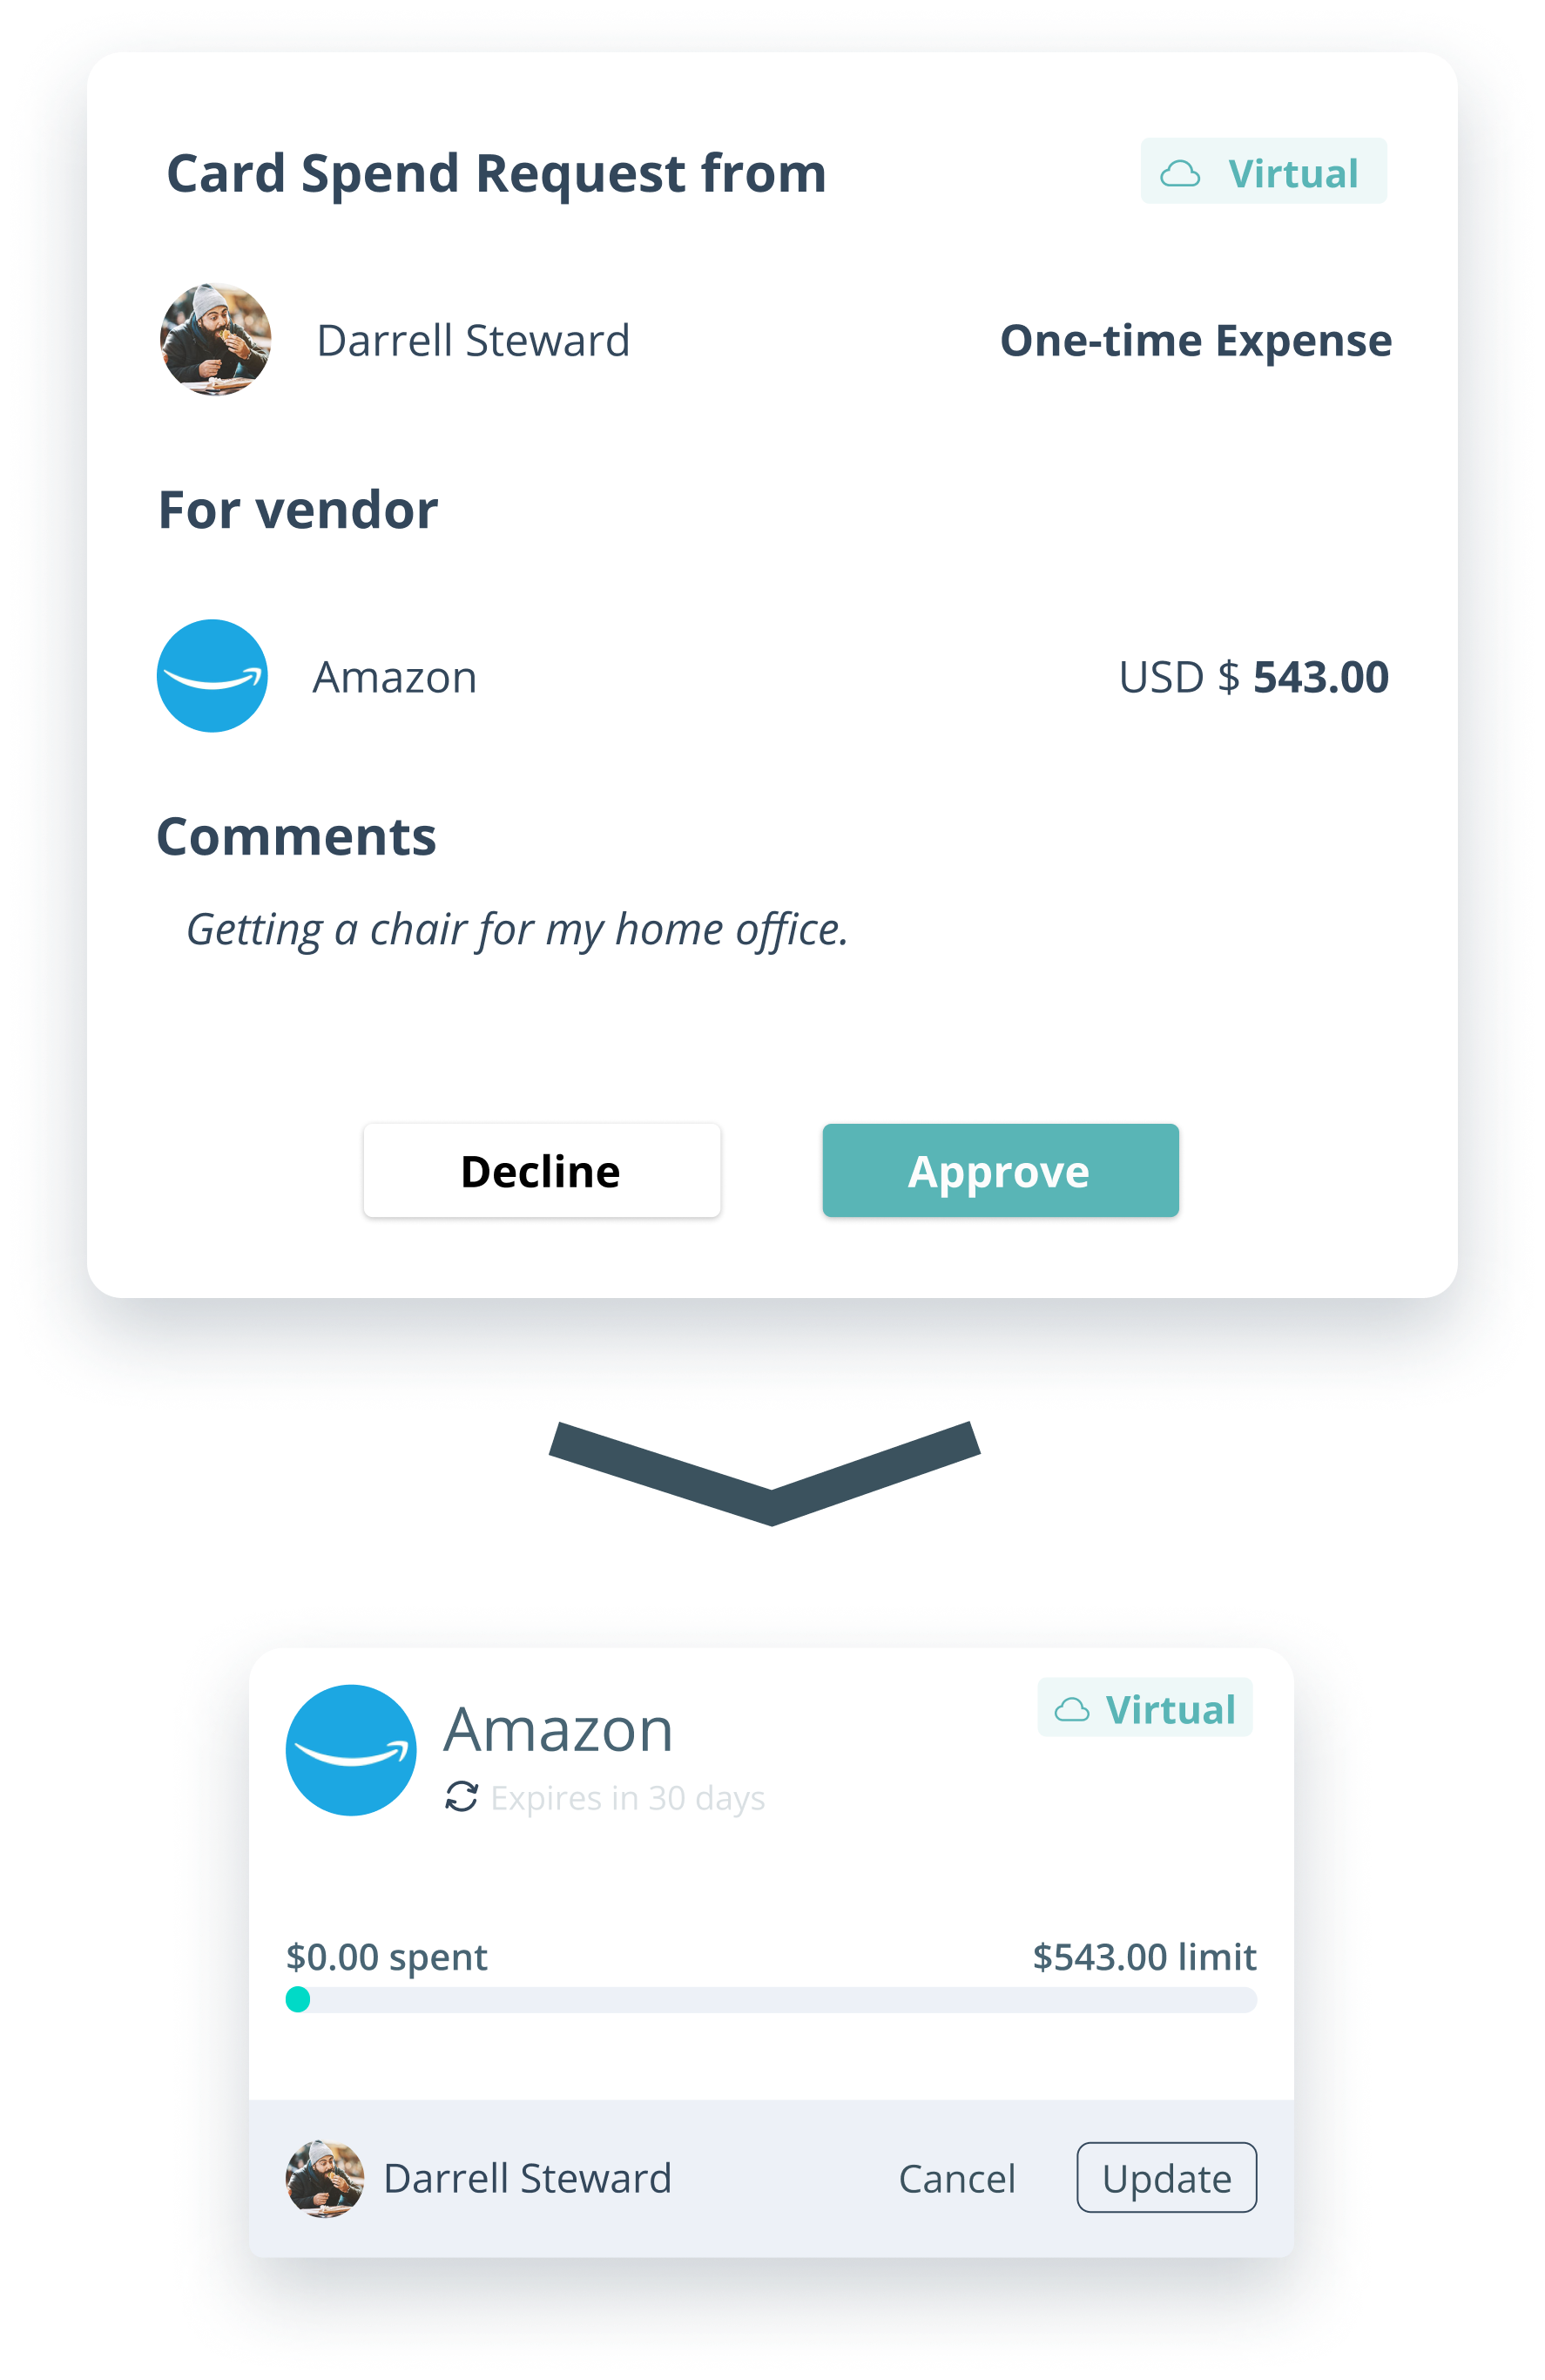 Journal makes it easy to request and approve spend with one time virtual cards with limits